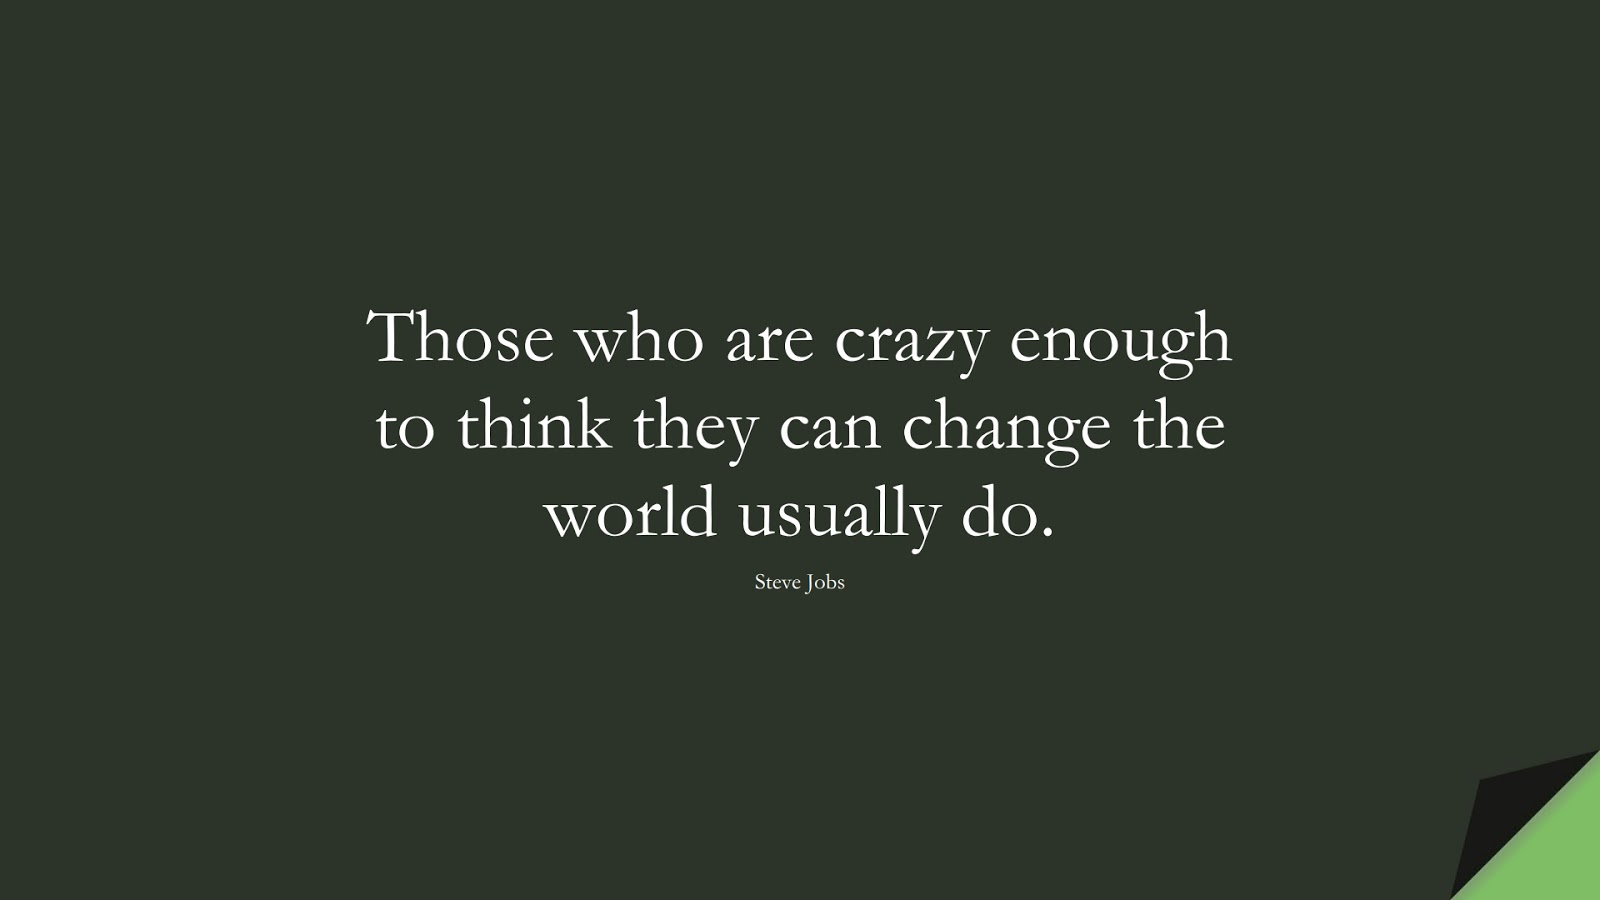 Those who are crazy enough to think they can change the world usually do. (Steve Jobs);  #HumanityQuotes